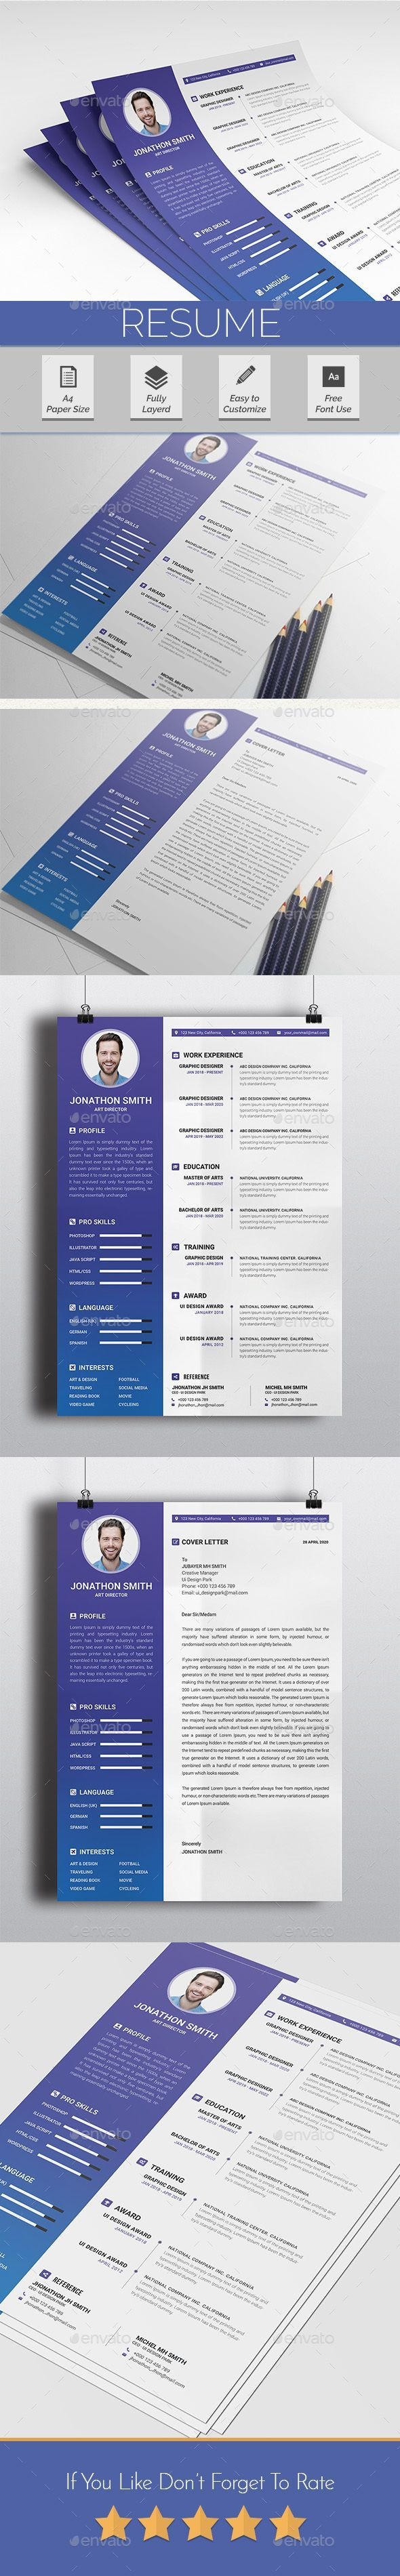 ResumeResume/cv with Cover Letter Design Main Features A4 with (210mmx297mm) with Bleeds Very Well Organized Files Resume/CV & Cover Letter Print Ready CMYK Mode 300 Dpi Free Font Used Images are not included